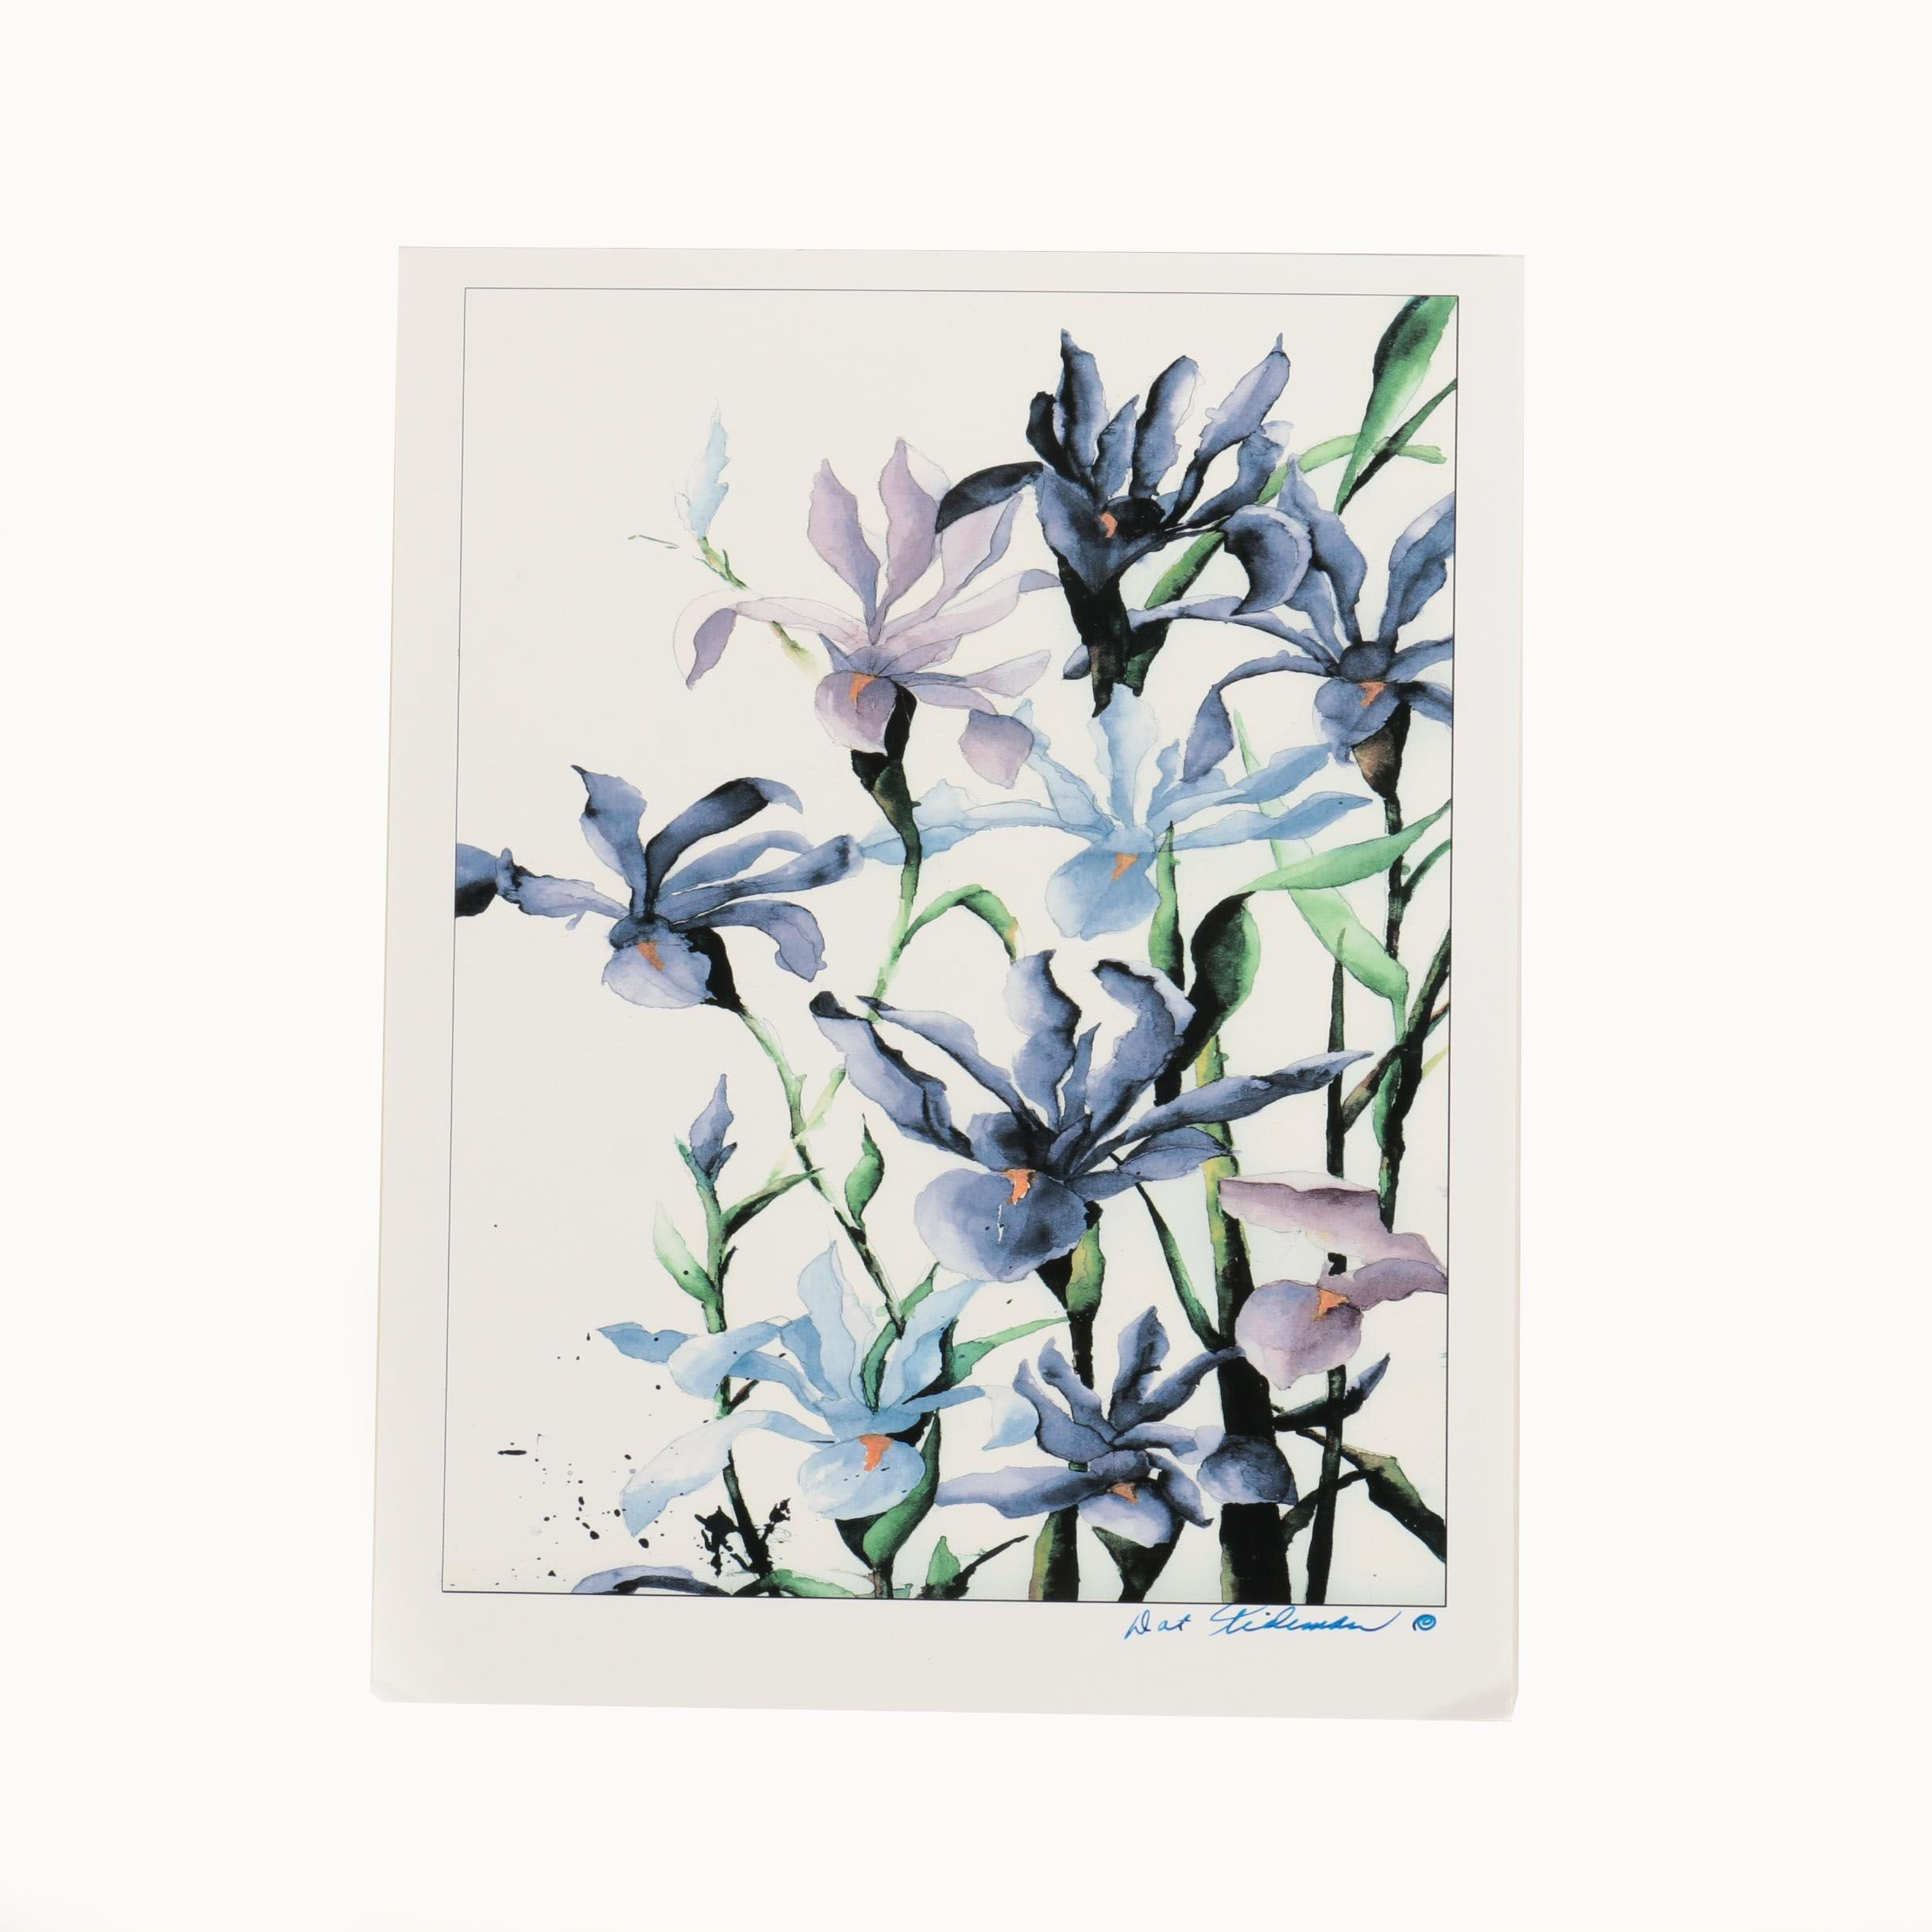 Dot Tideman Giclee Print of Watercolor Painting of Flowers